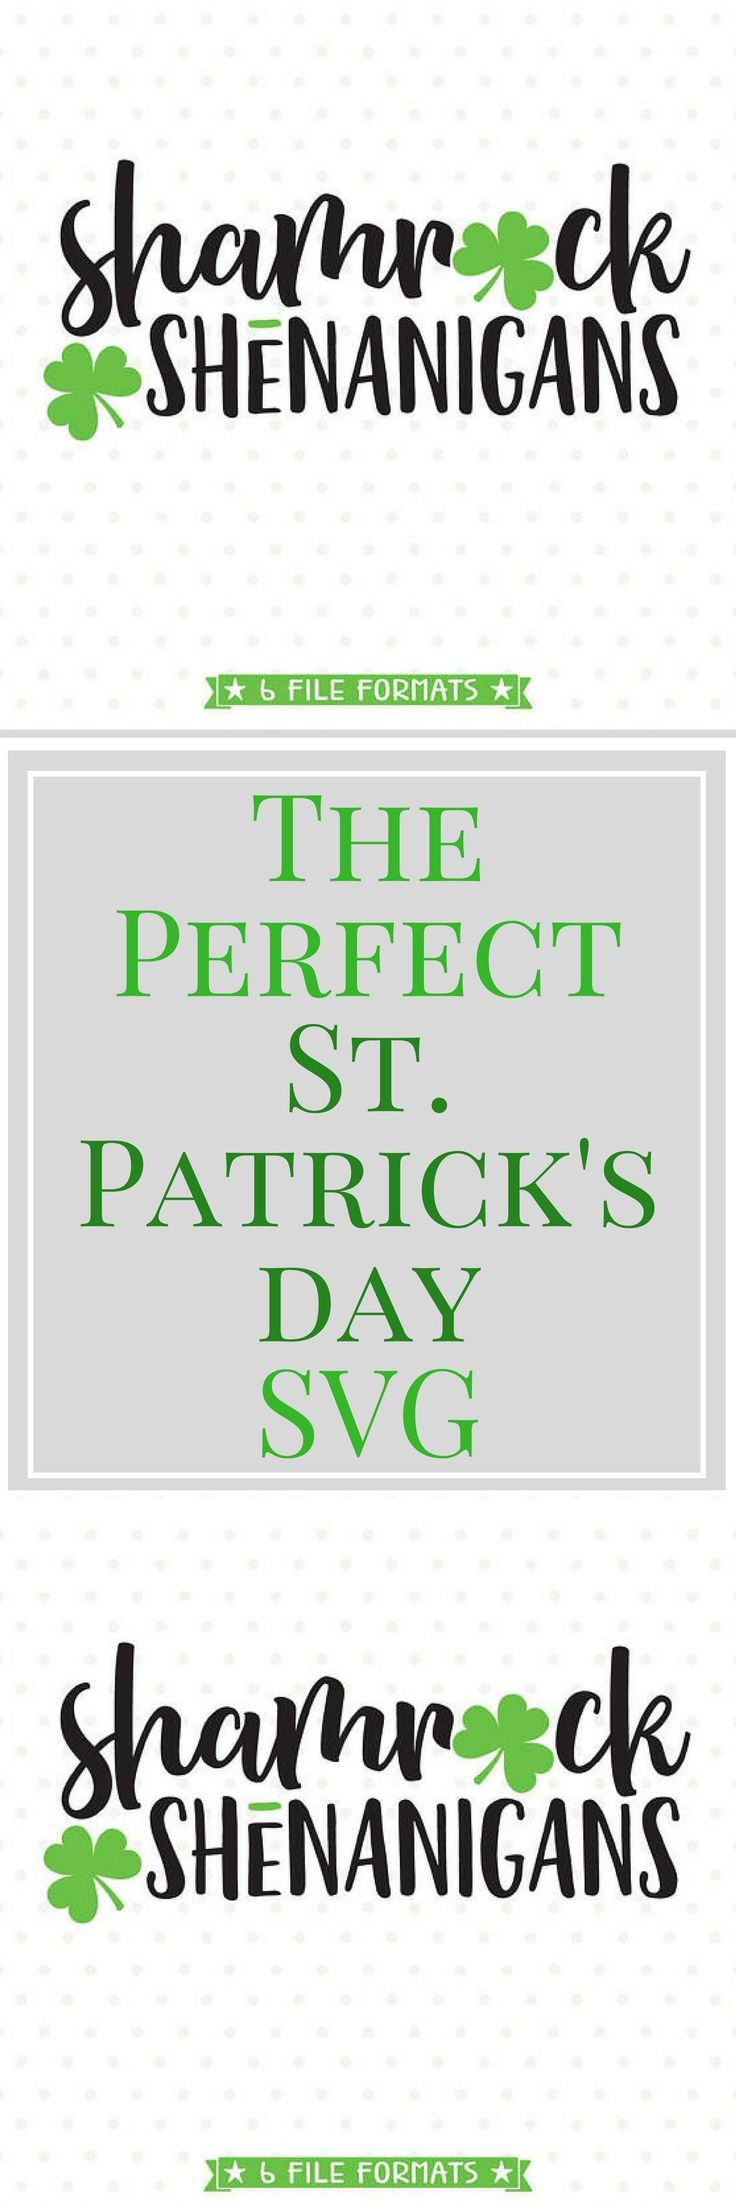 Go wild with this festive St Patricks Day SVG file. Cuttable SVG files are perfect for all your DIY projects or handmade business product lines. You can use this Shamrock SVG file with your vinyl cutting machine or print it out on to Iron on transfer paper to create cute shirts for St Patricks Day, mugs, tumblers, cards, party decor and more for yourself, for others, or to resell. Shamrock Shenanigans svg, St Patricks svg, Shamrock SVG file, Cuttable SVG file, Iron on file